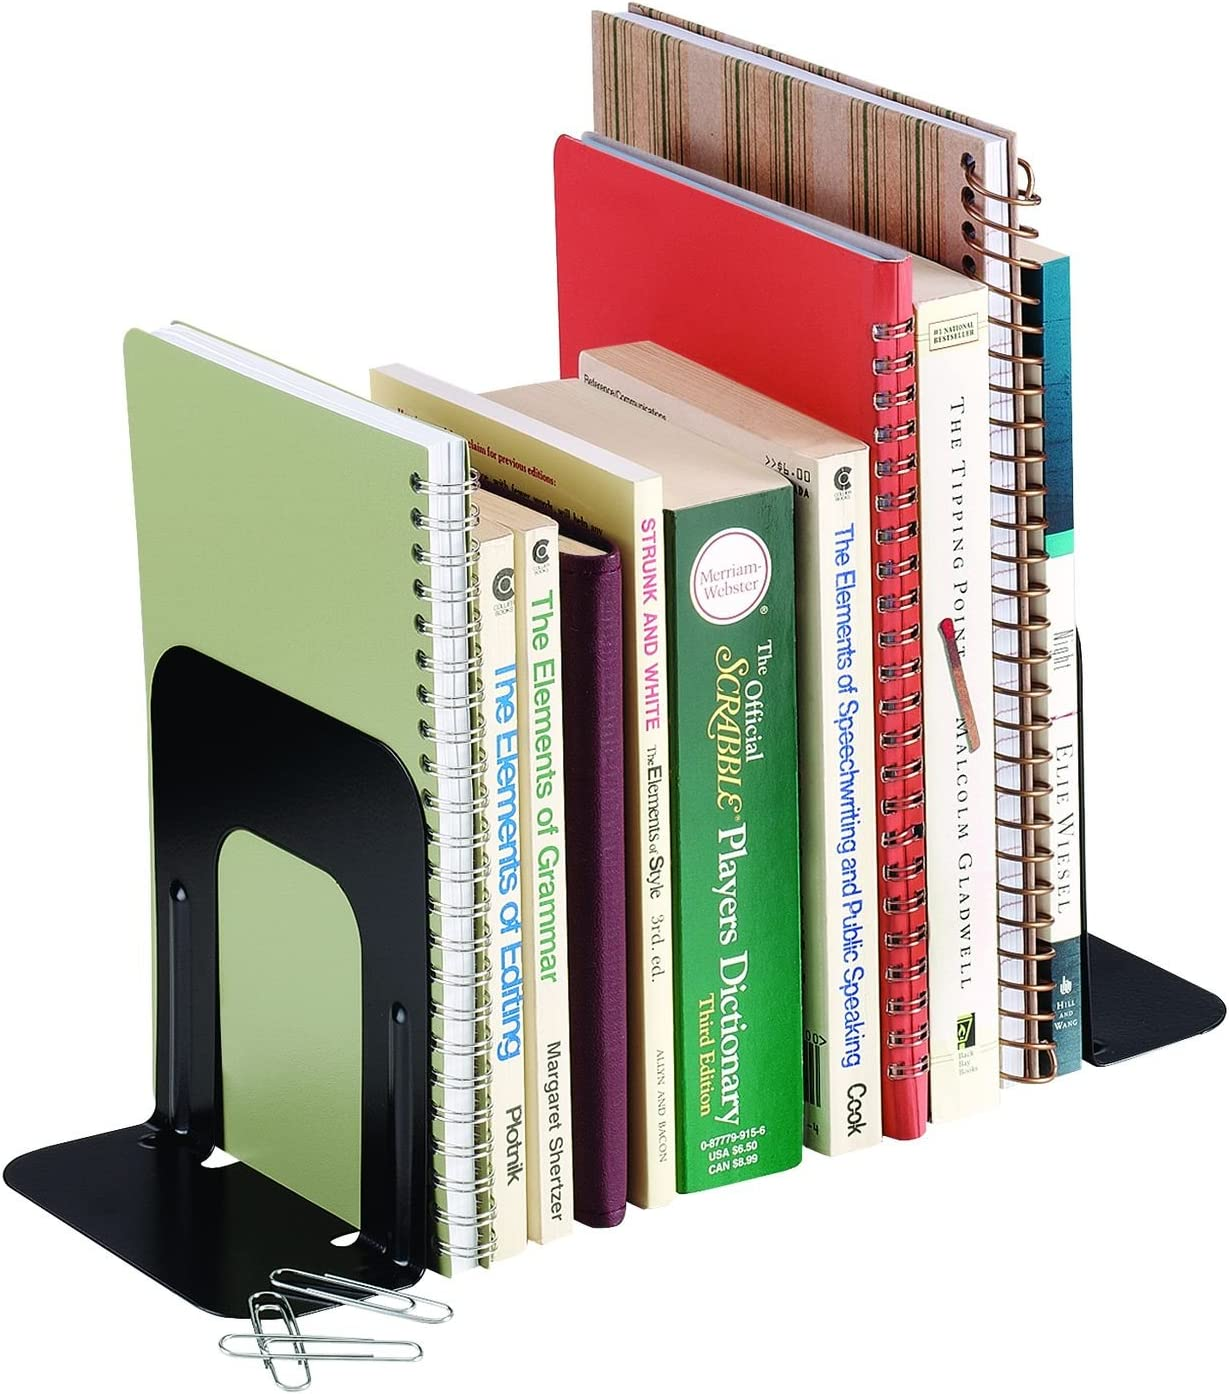 Direct sale of manufacturer Reservation STEELMASTER Economy Steel Bookends 5 Inch 1 4.69 Pair x Backs